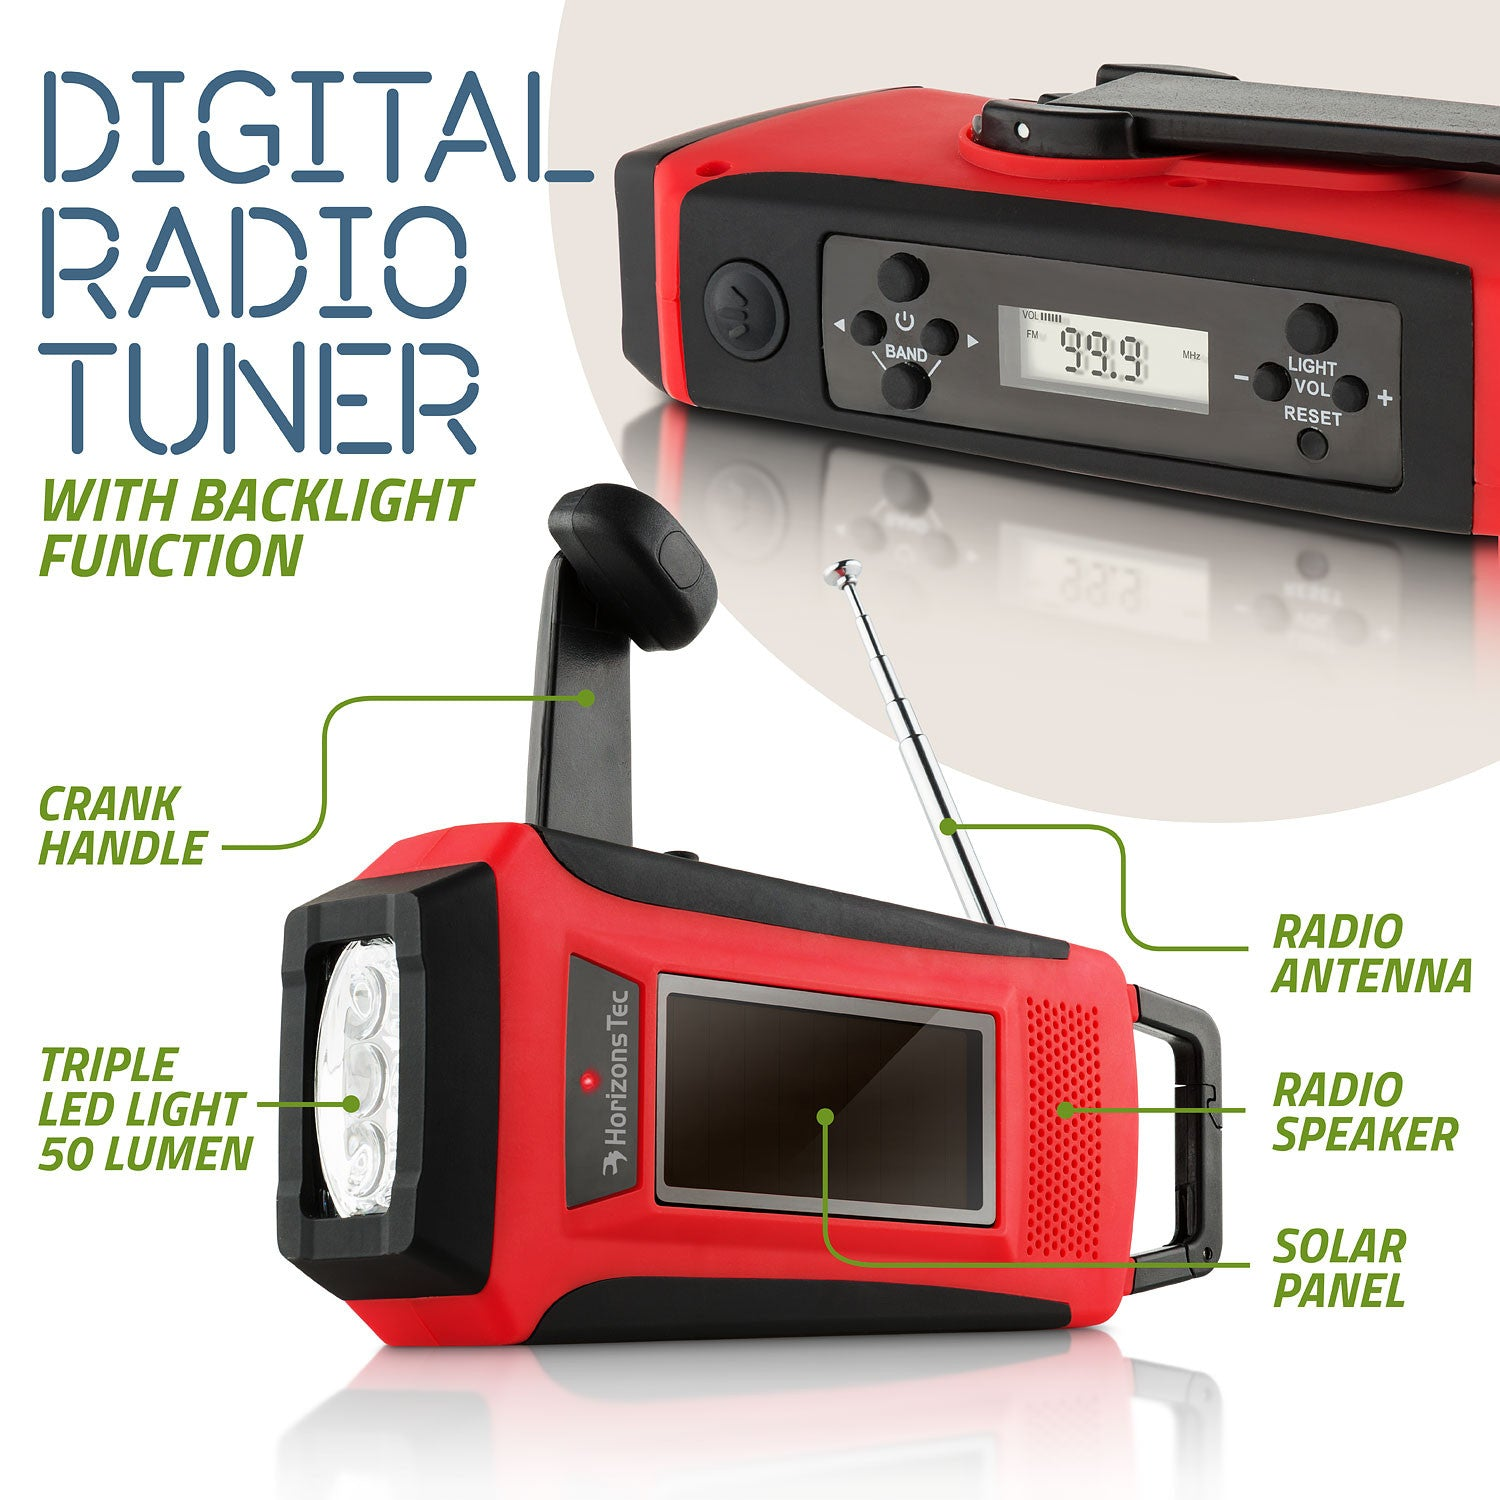 Hand crank radio cell phone charger reviews